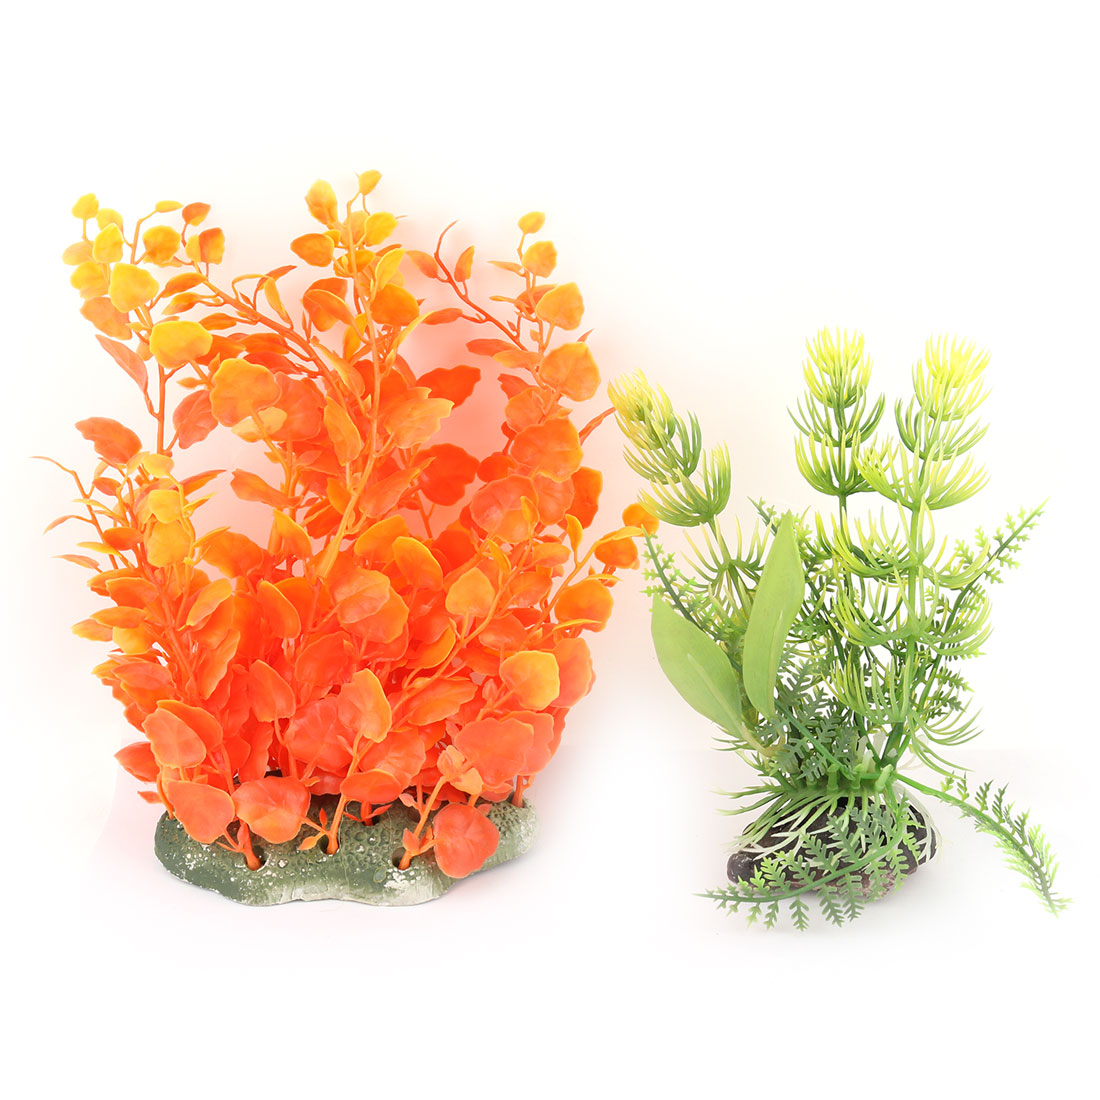 Aquarium Plastic Manmade Landscaping Underwater Water Grass Plant Decor 2 in 1